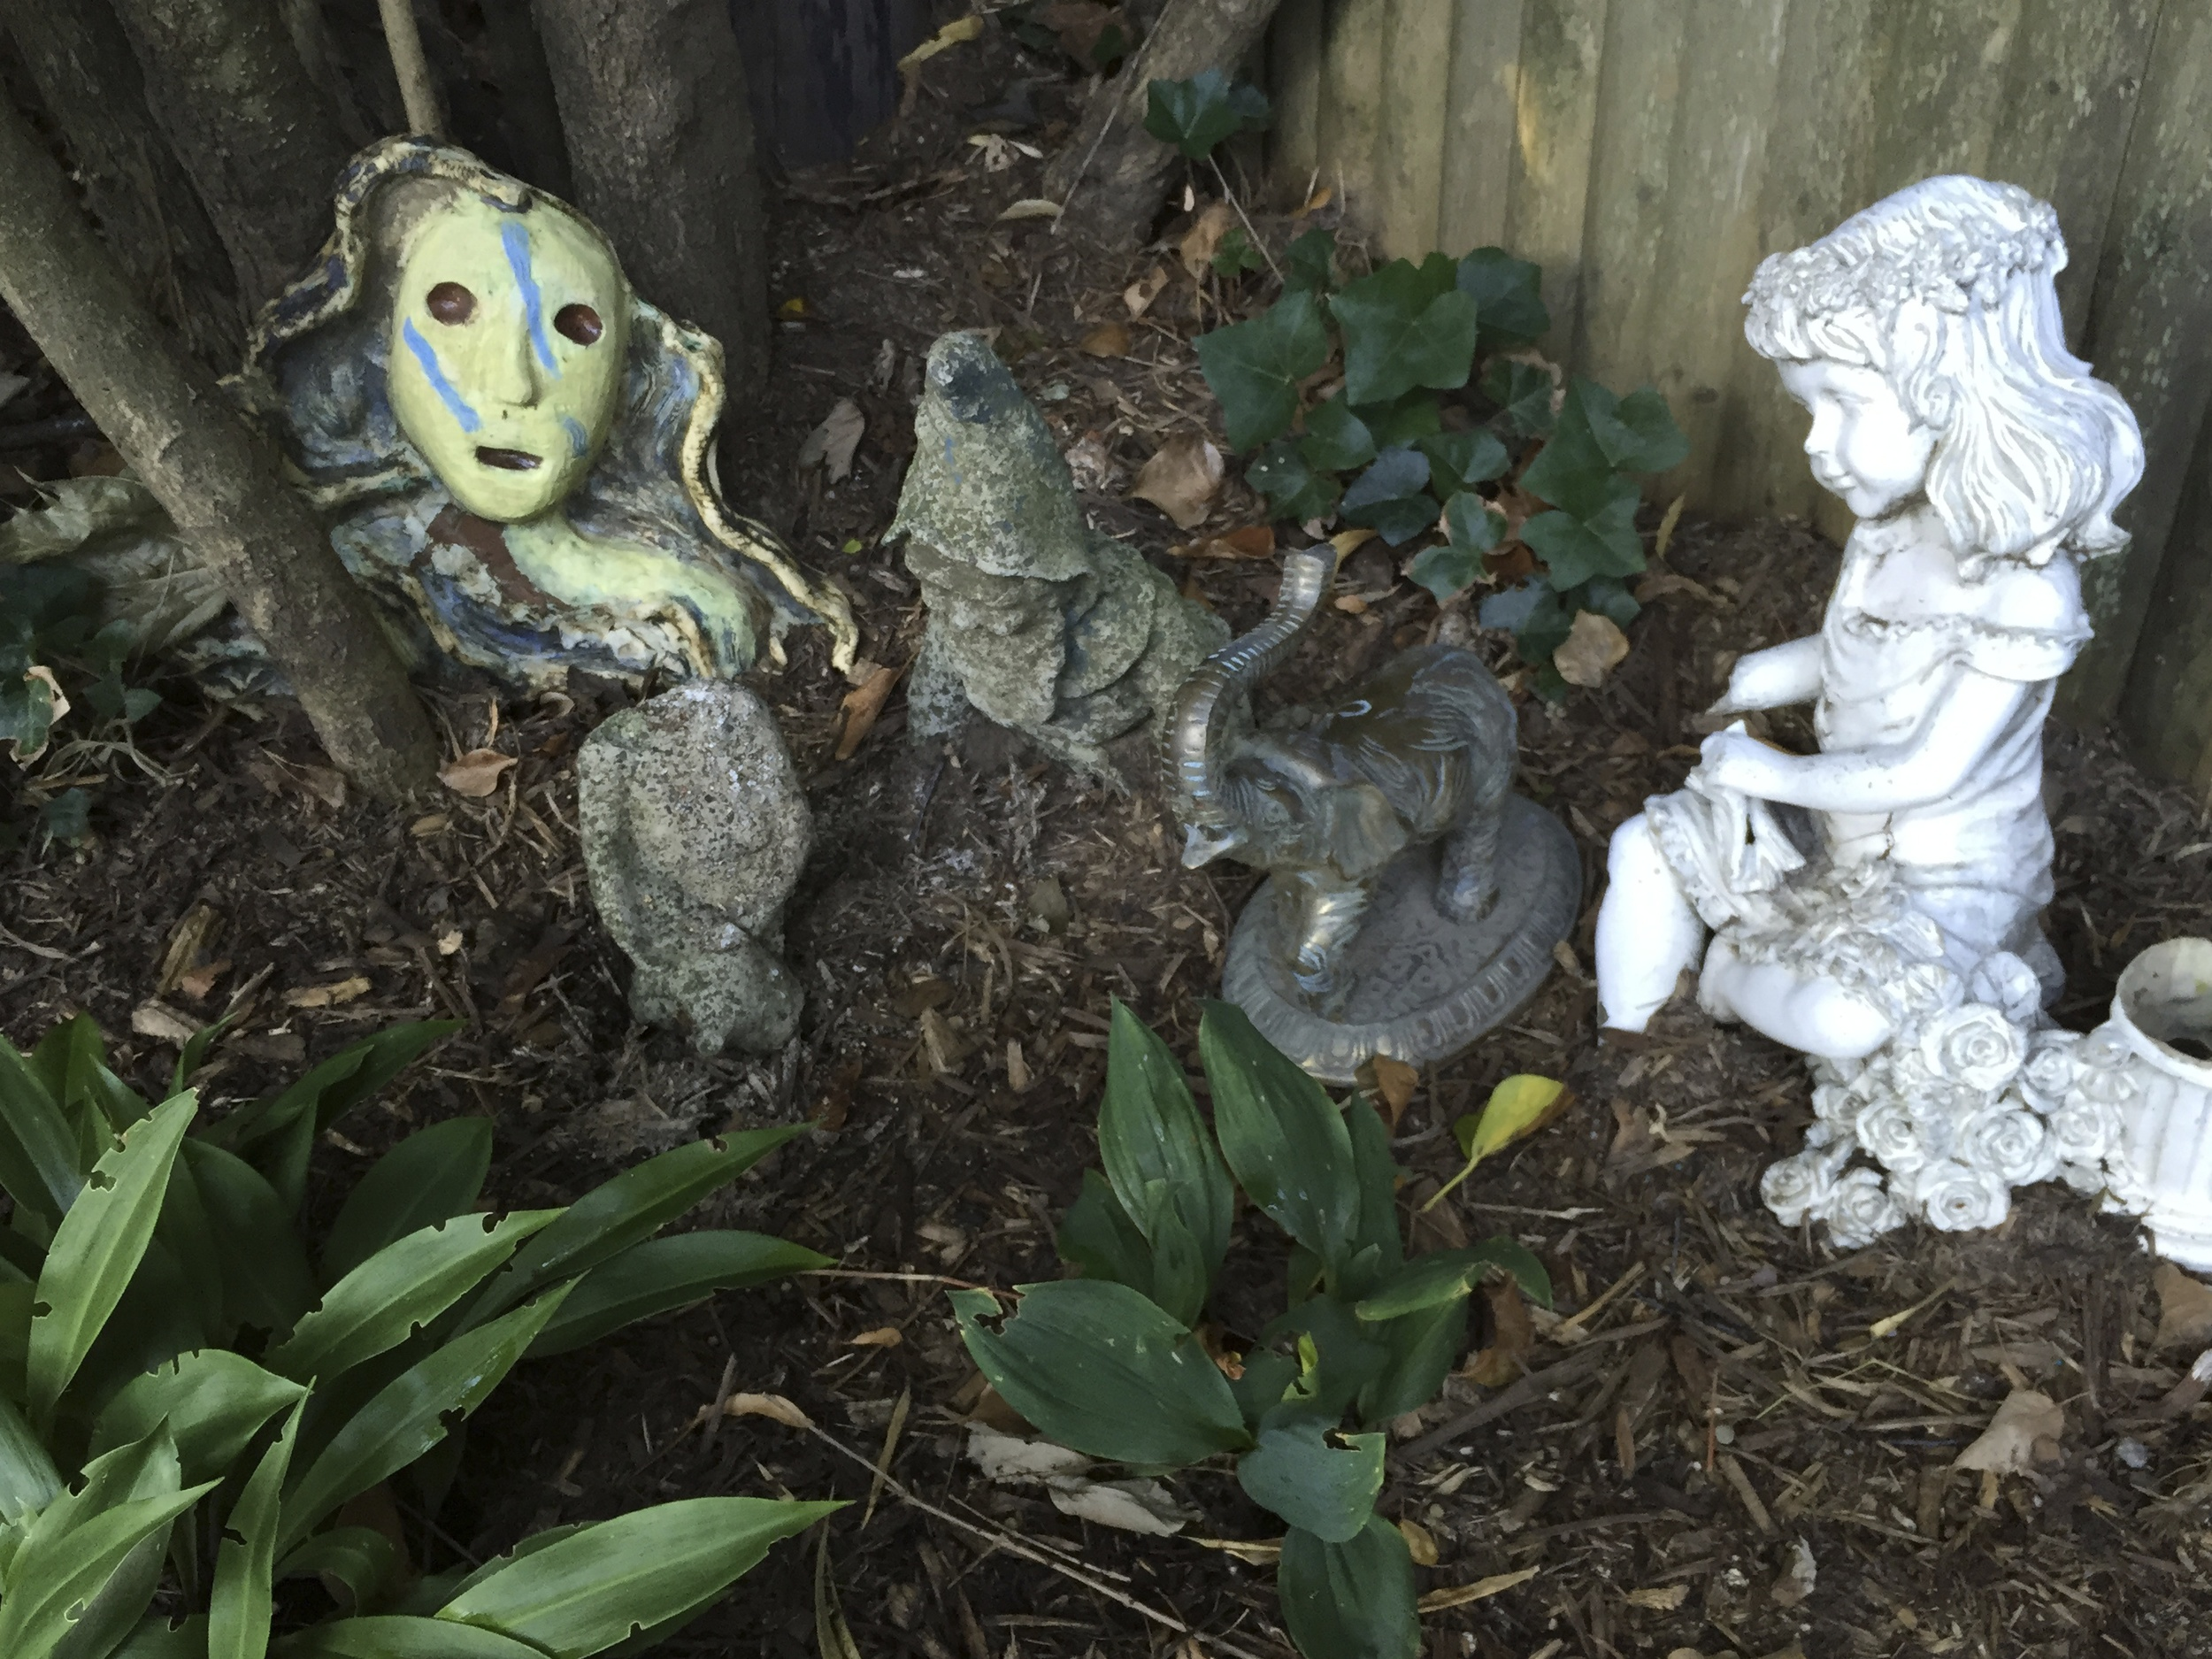 Home for Discarded Sculptures